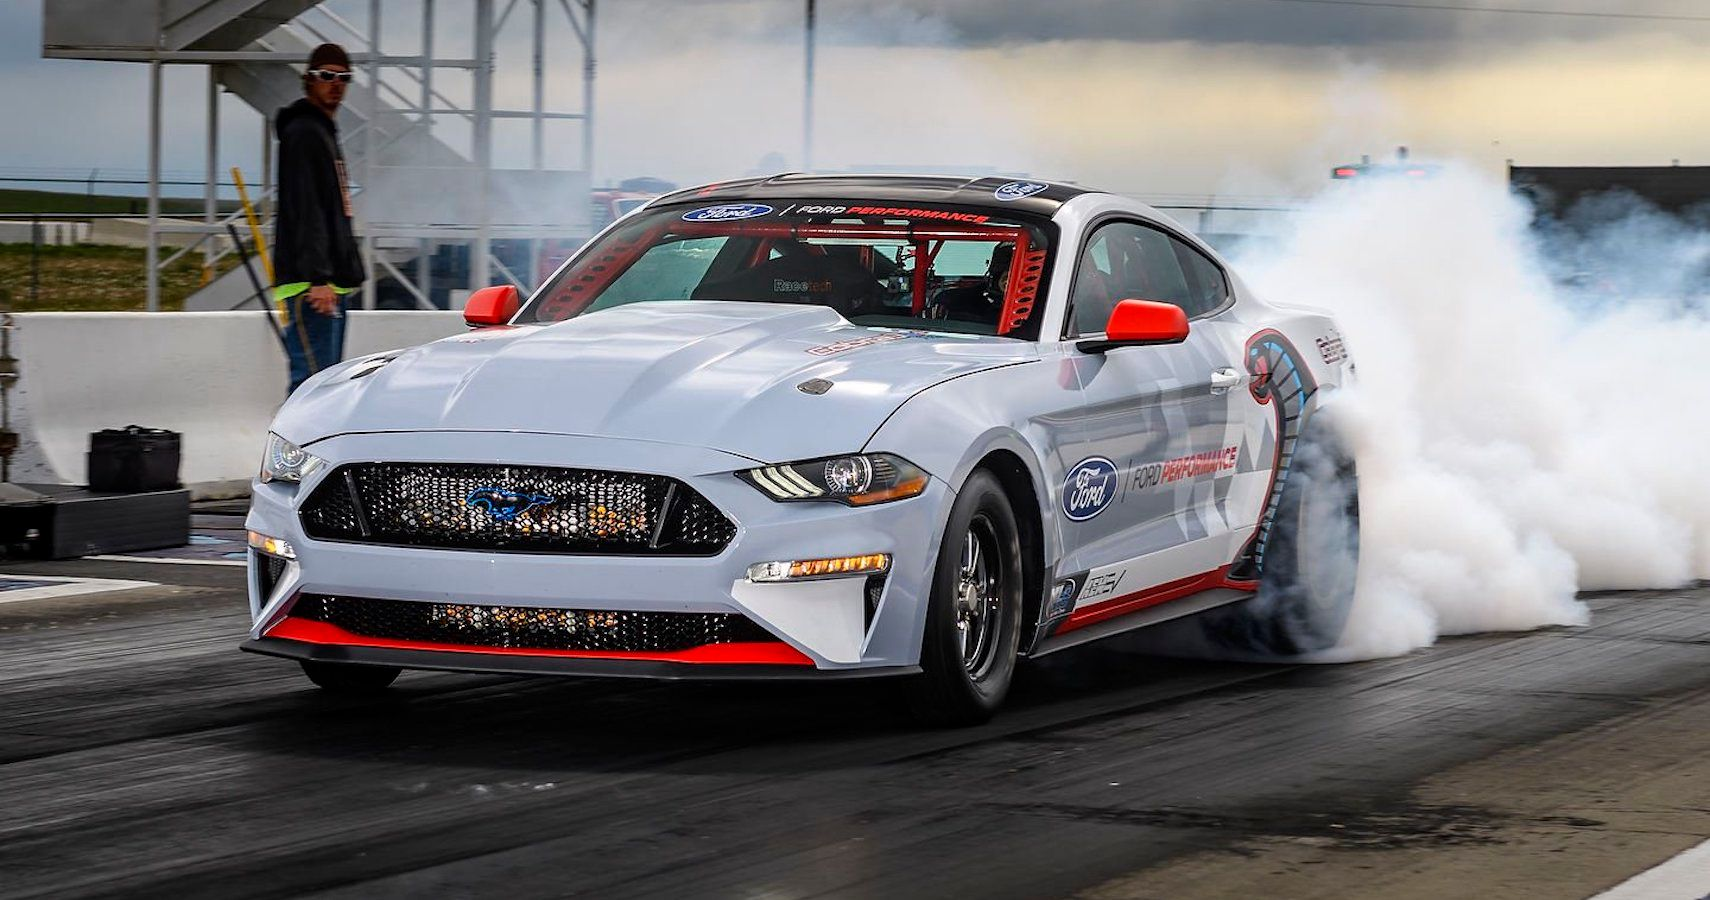 Ford Mustang Cobra Jet Is Here To Crush All Others With 1502 Electric Horses